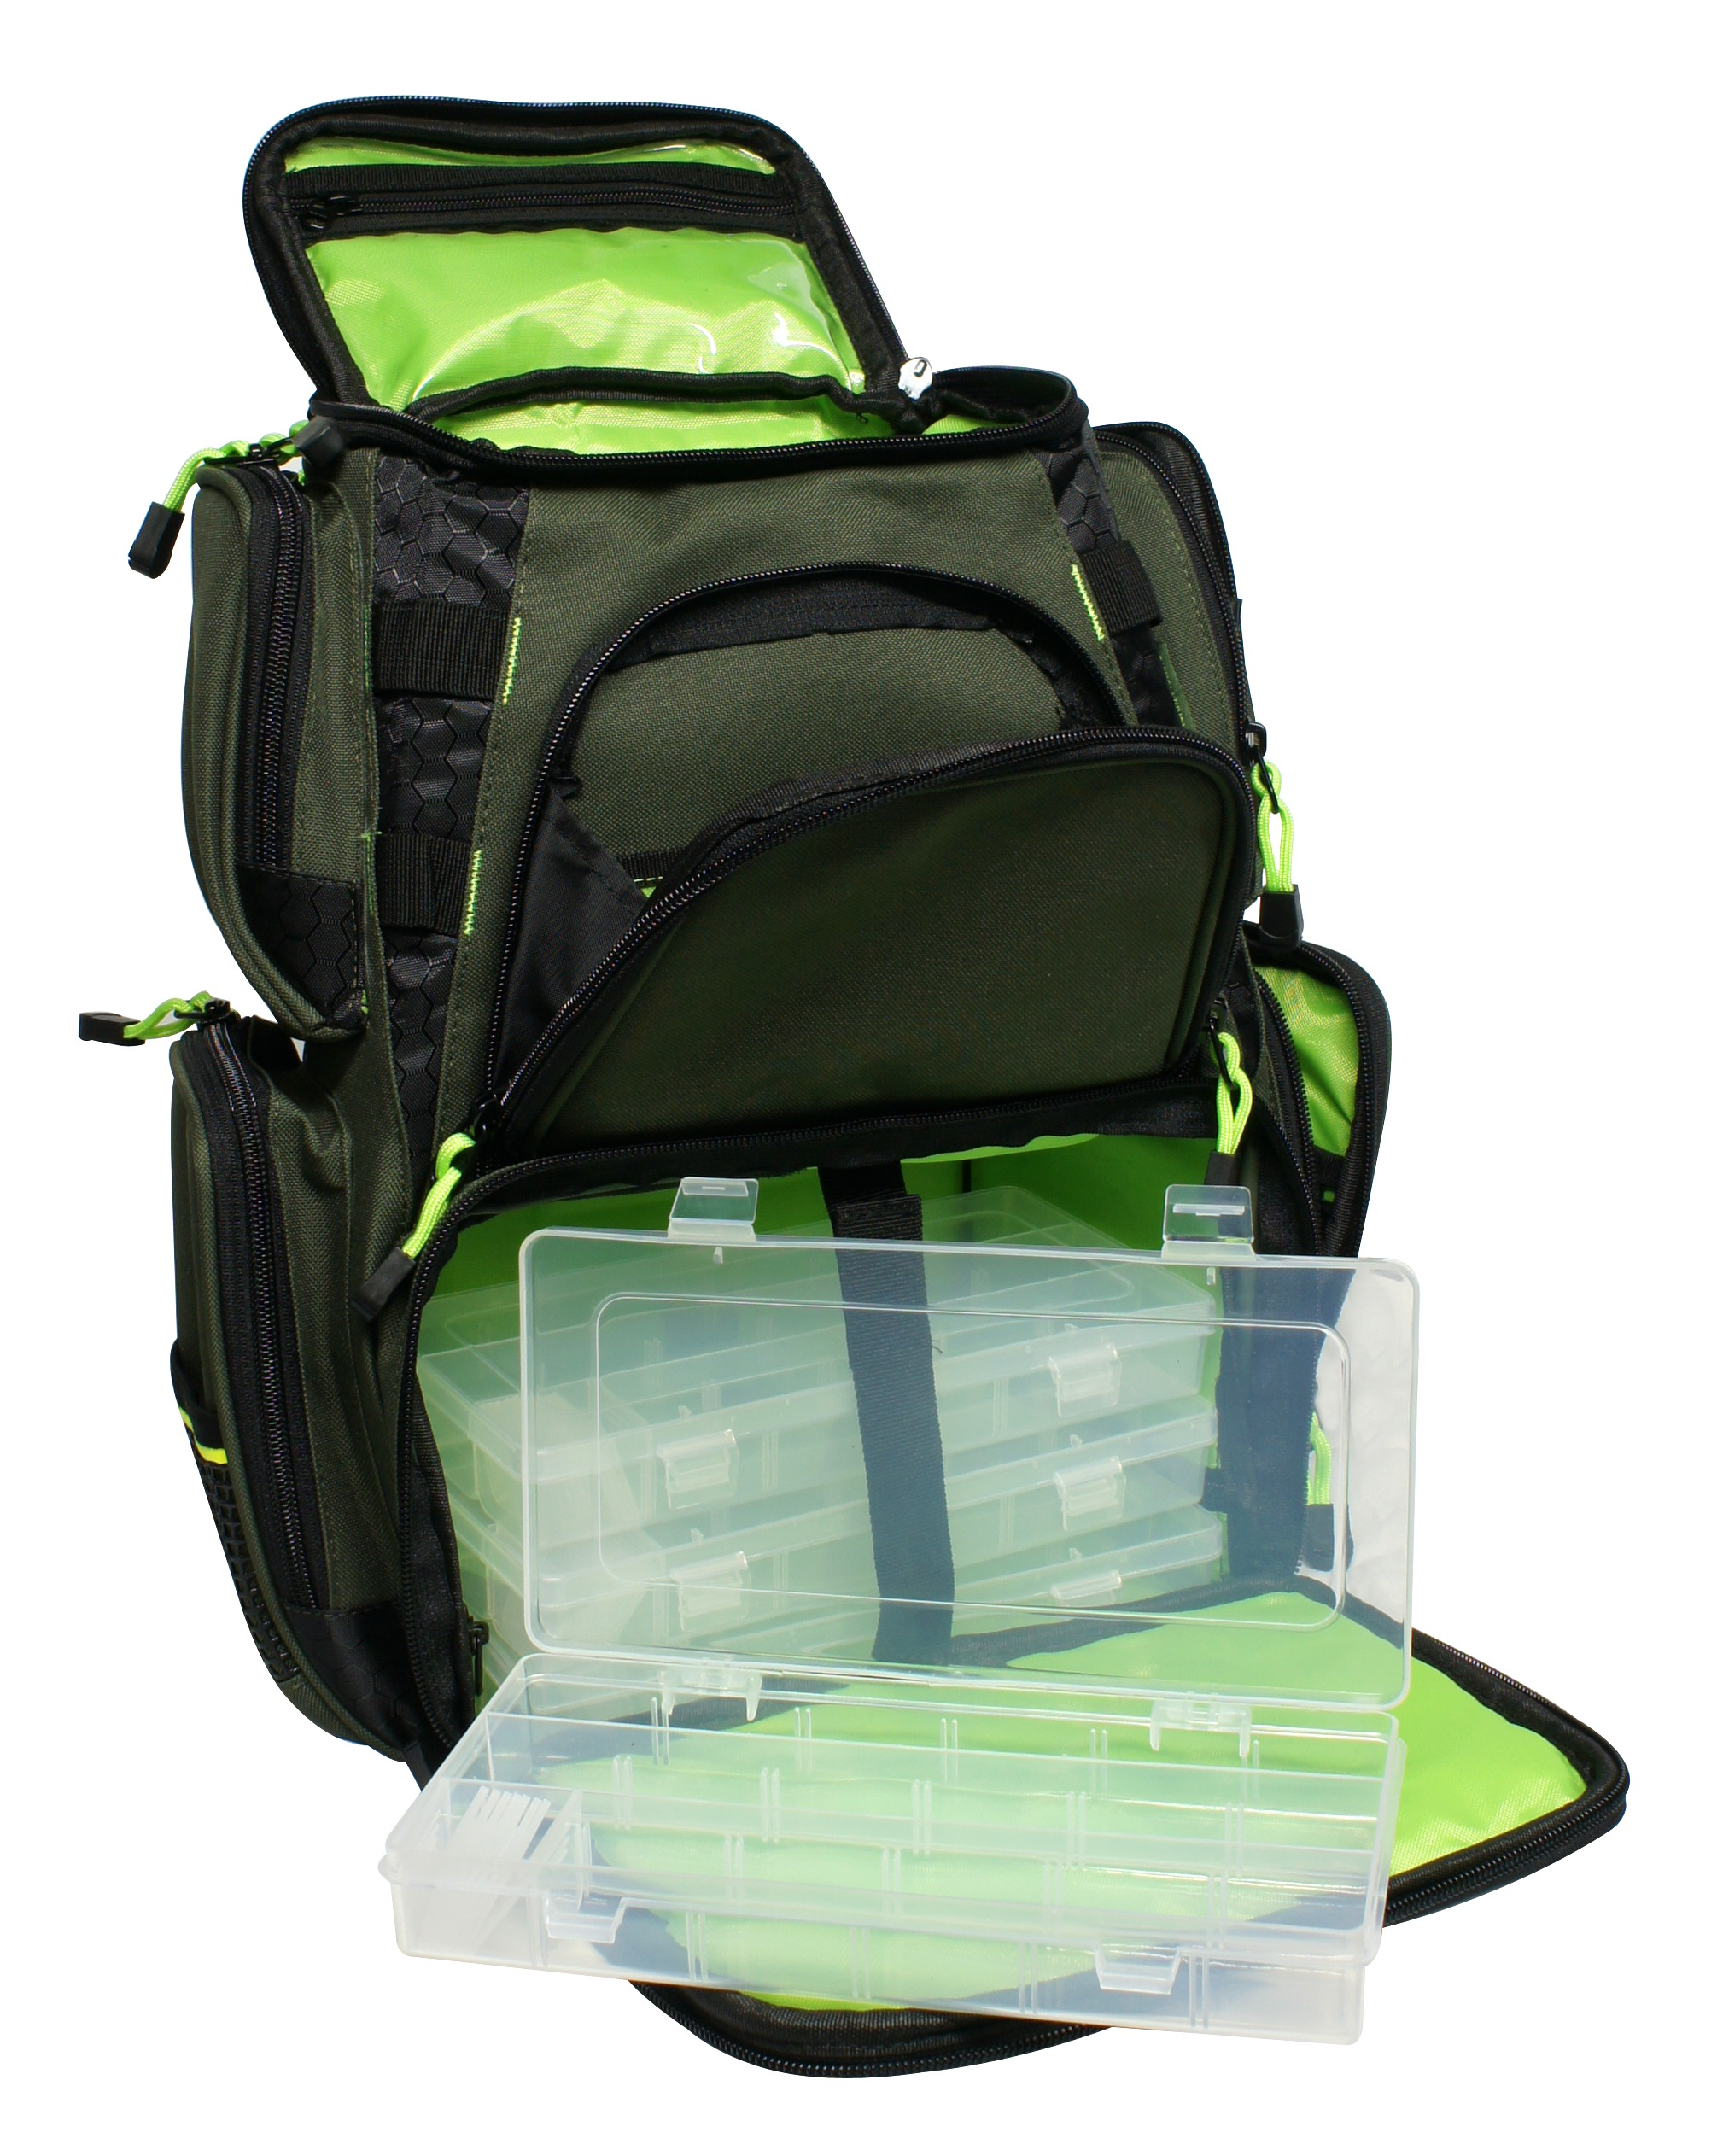 Backpack with 4 Lure Boxes